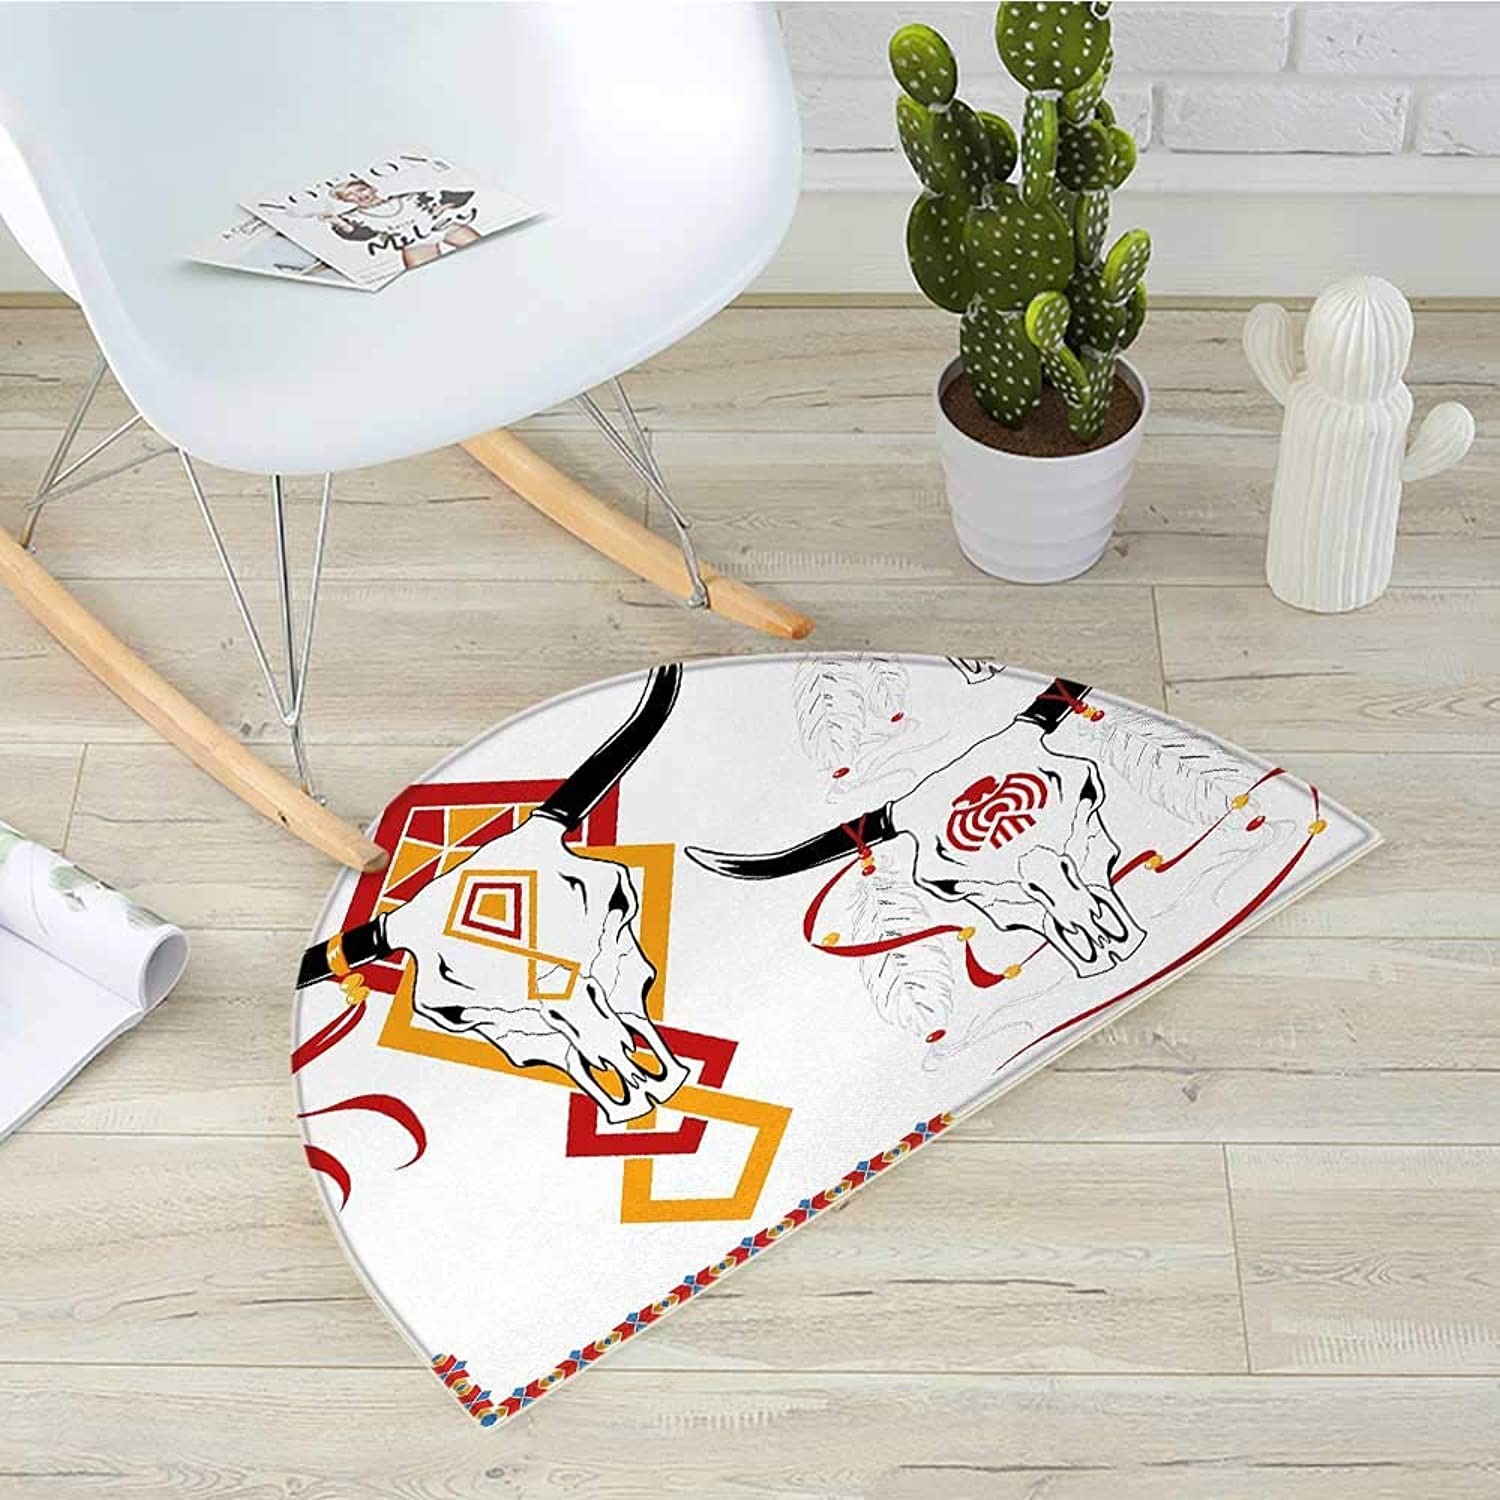 Tattoo Semicircular CushionBulls Head with Feather of Bird as Accessory with Tribal Designers Print Entry Door Mat H 39.3  xD 59  Red Yellow and White